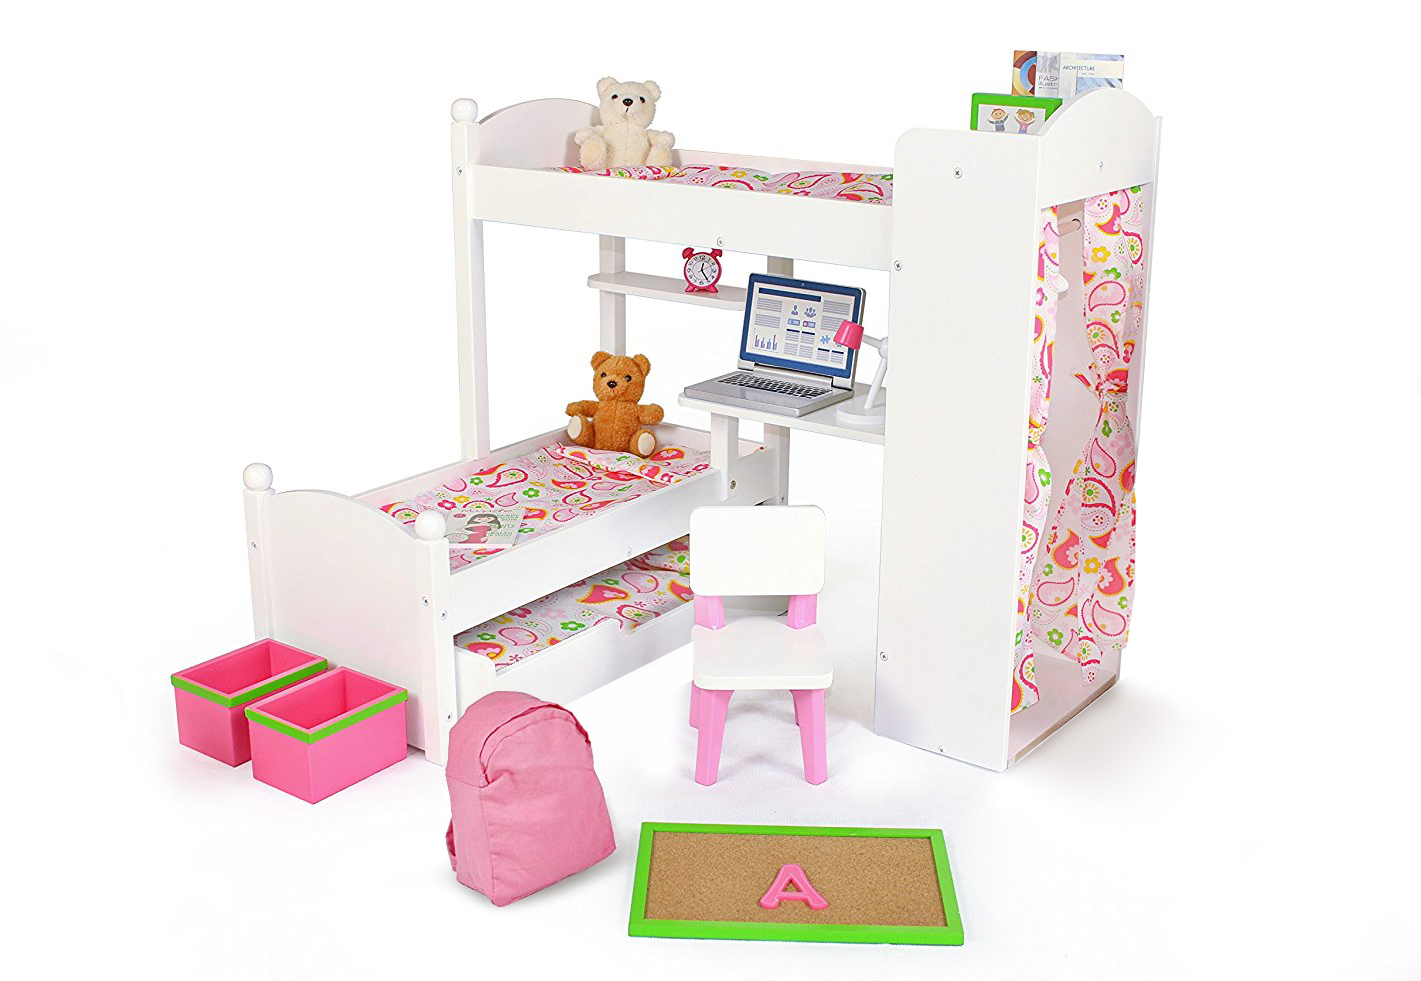 18 Inch Doll Furniture Bunk Beds w  Trundle and Accessories Playtime by Eimmie Collection by